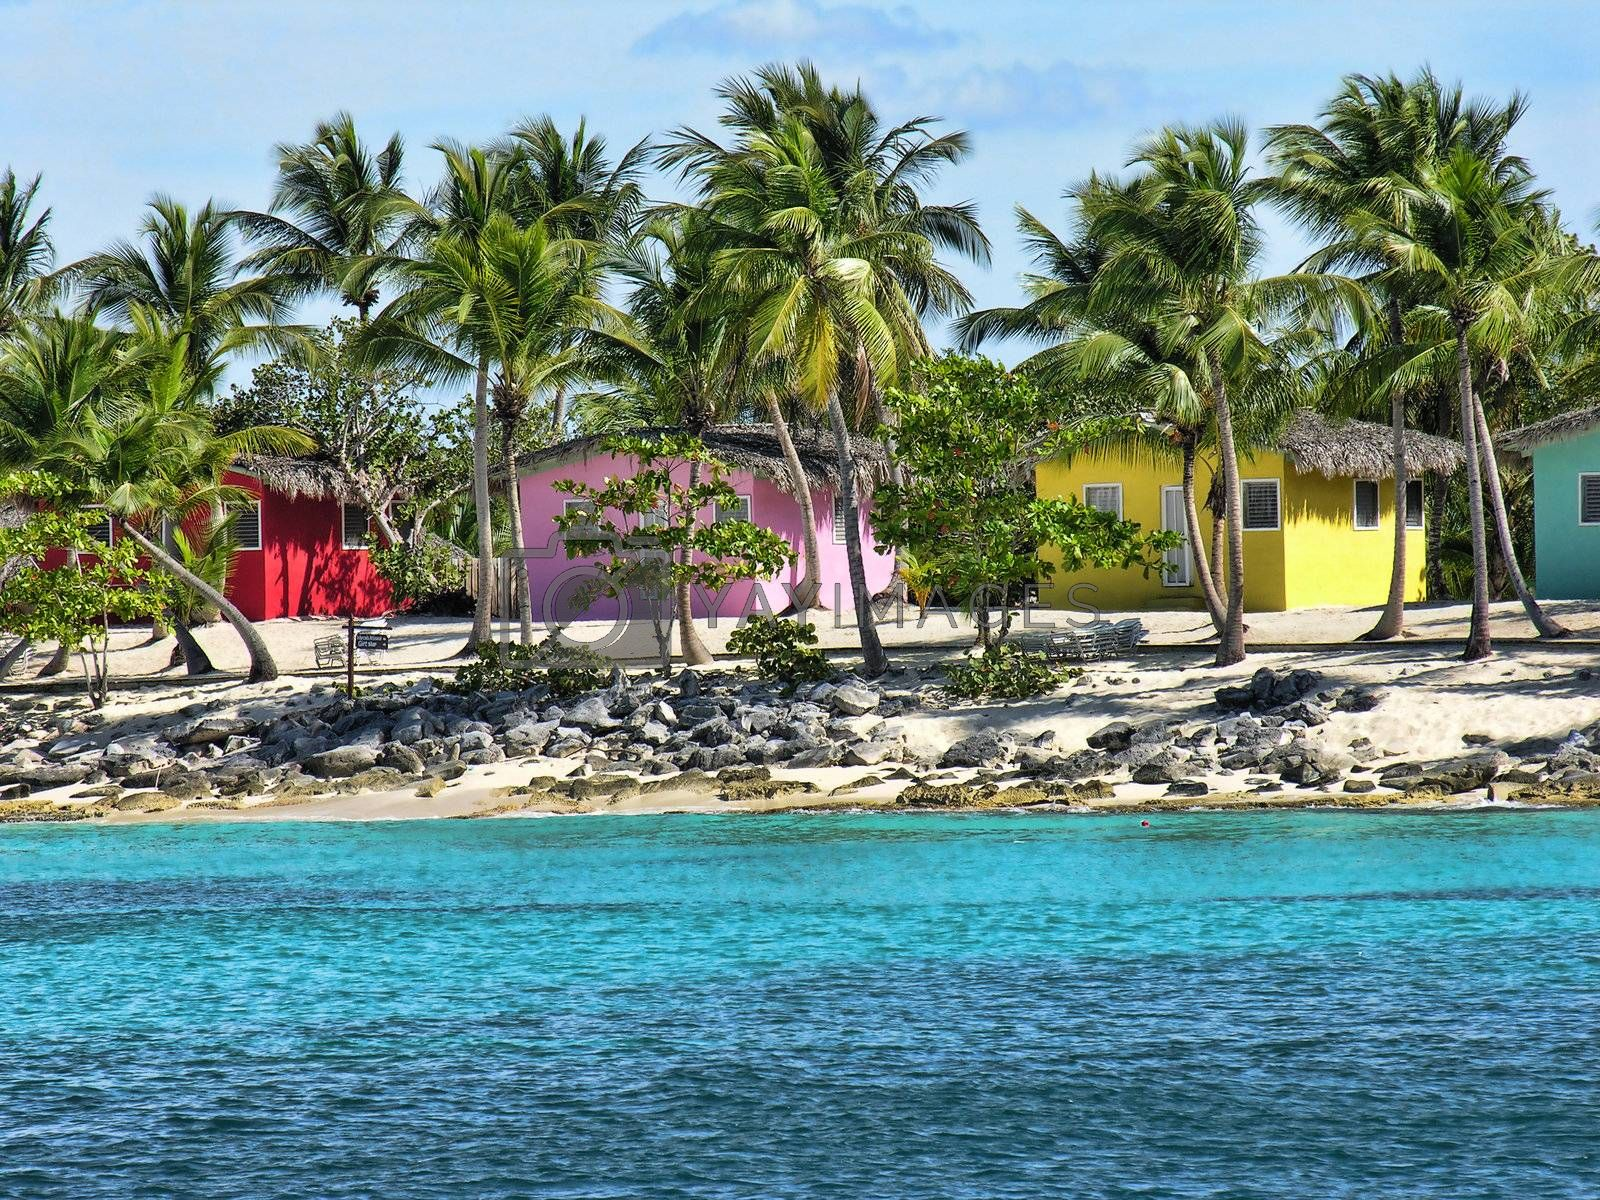 Small and Coloured Homes on the Coast of Santo Domingo by jovannig